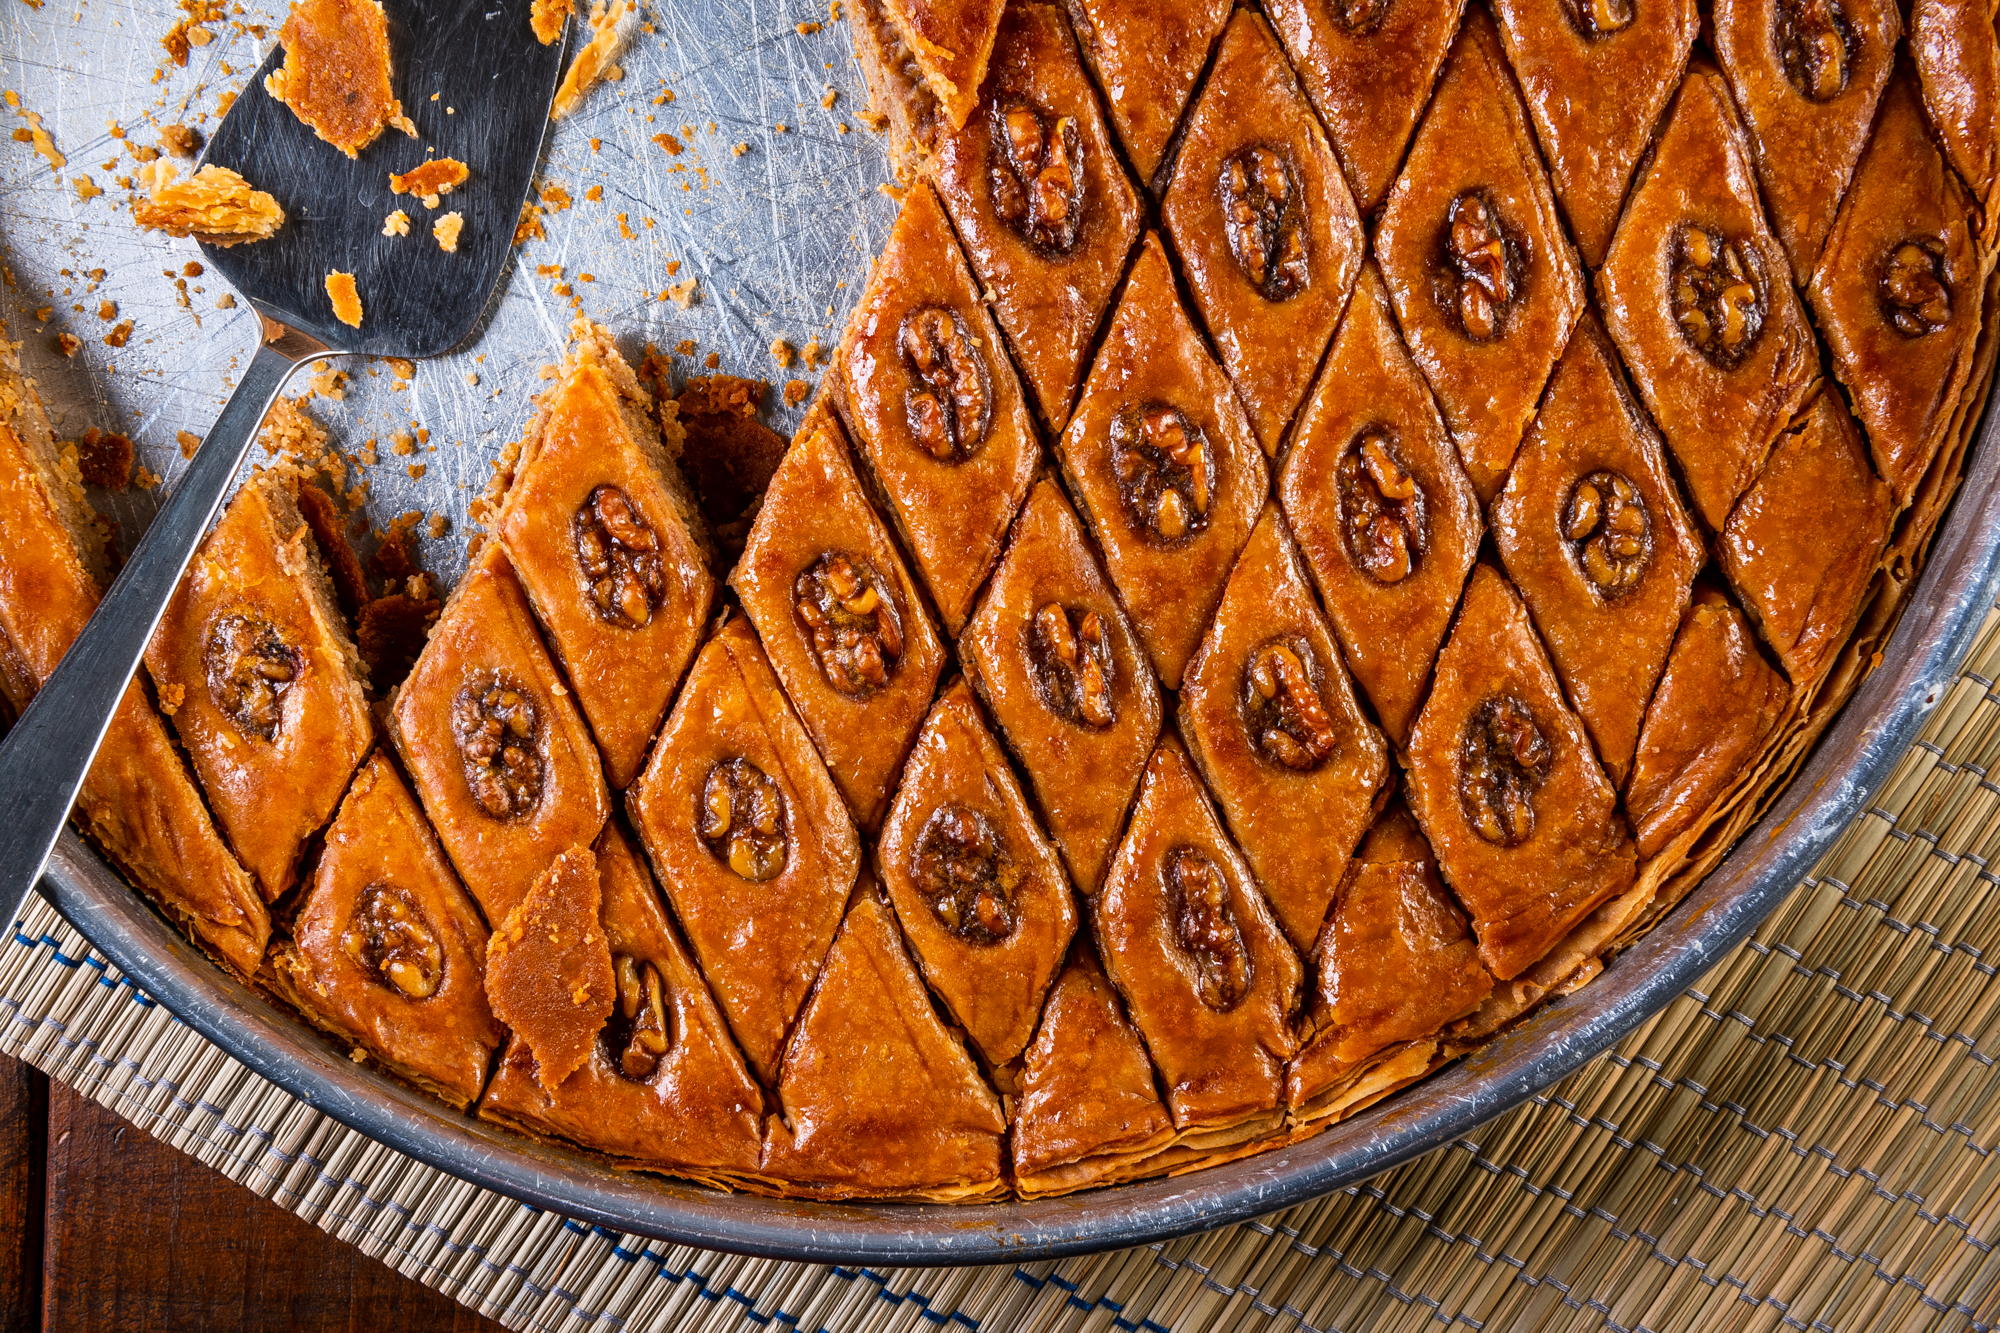 Making one tray of pakhlava at Sharbat can take up to four hours.